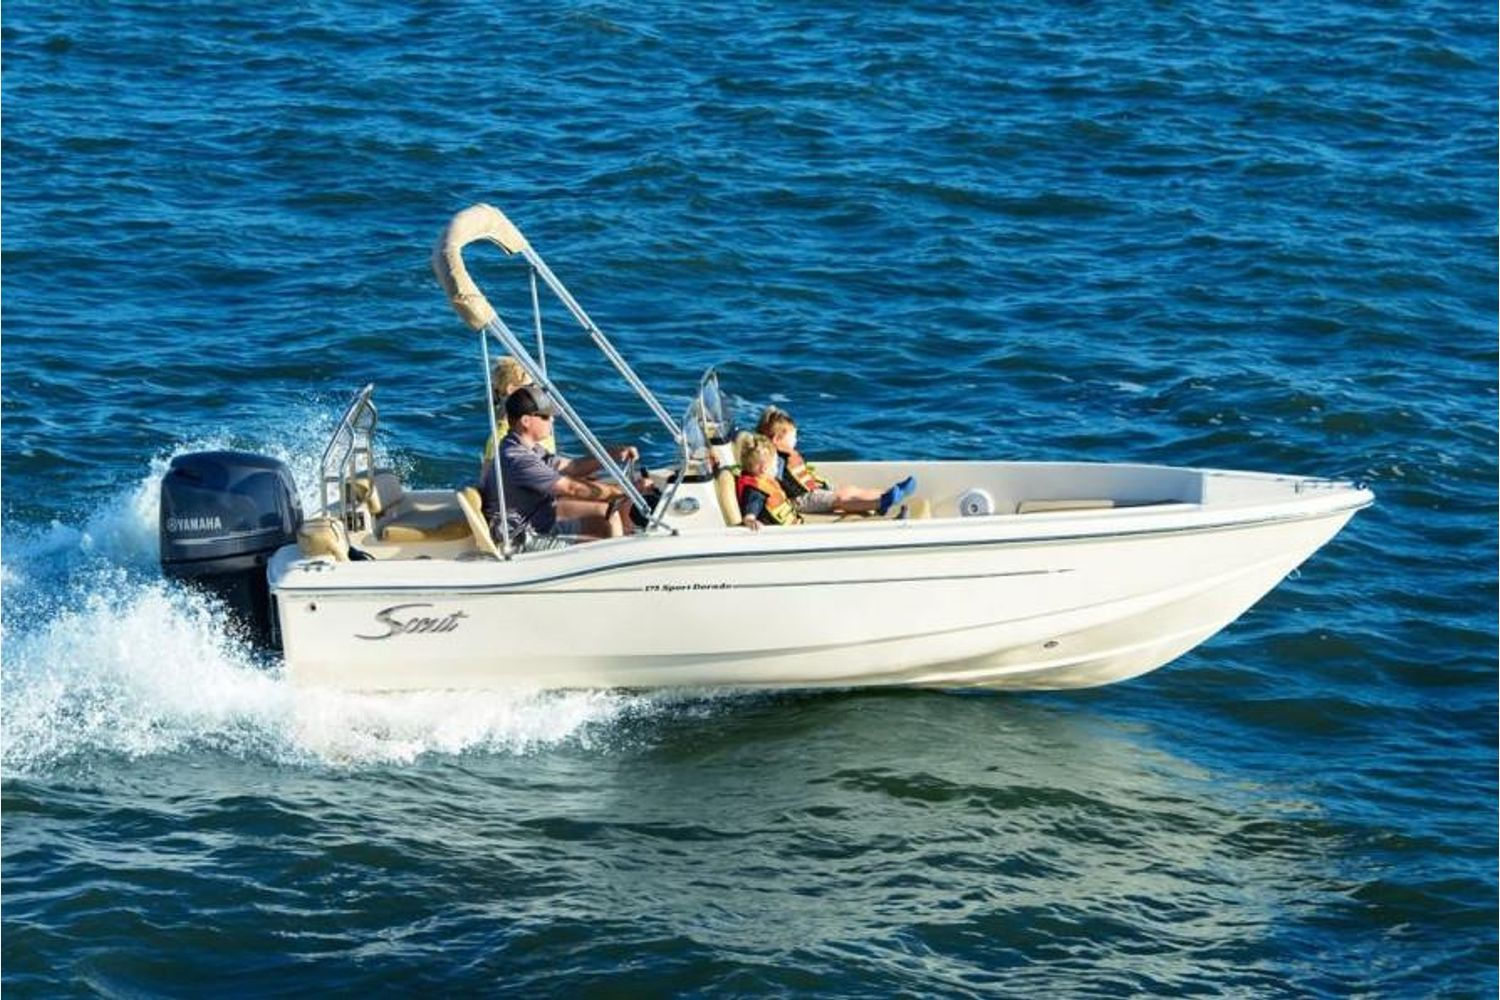 Thumbnail 1 for 2021 Scout 175 Sport Dorado